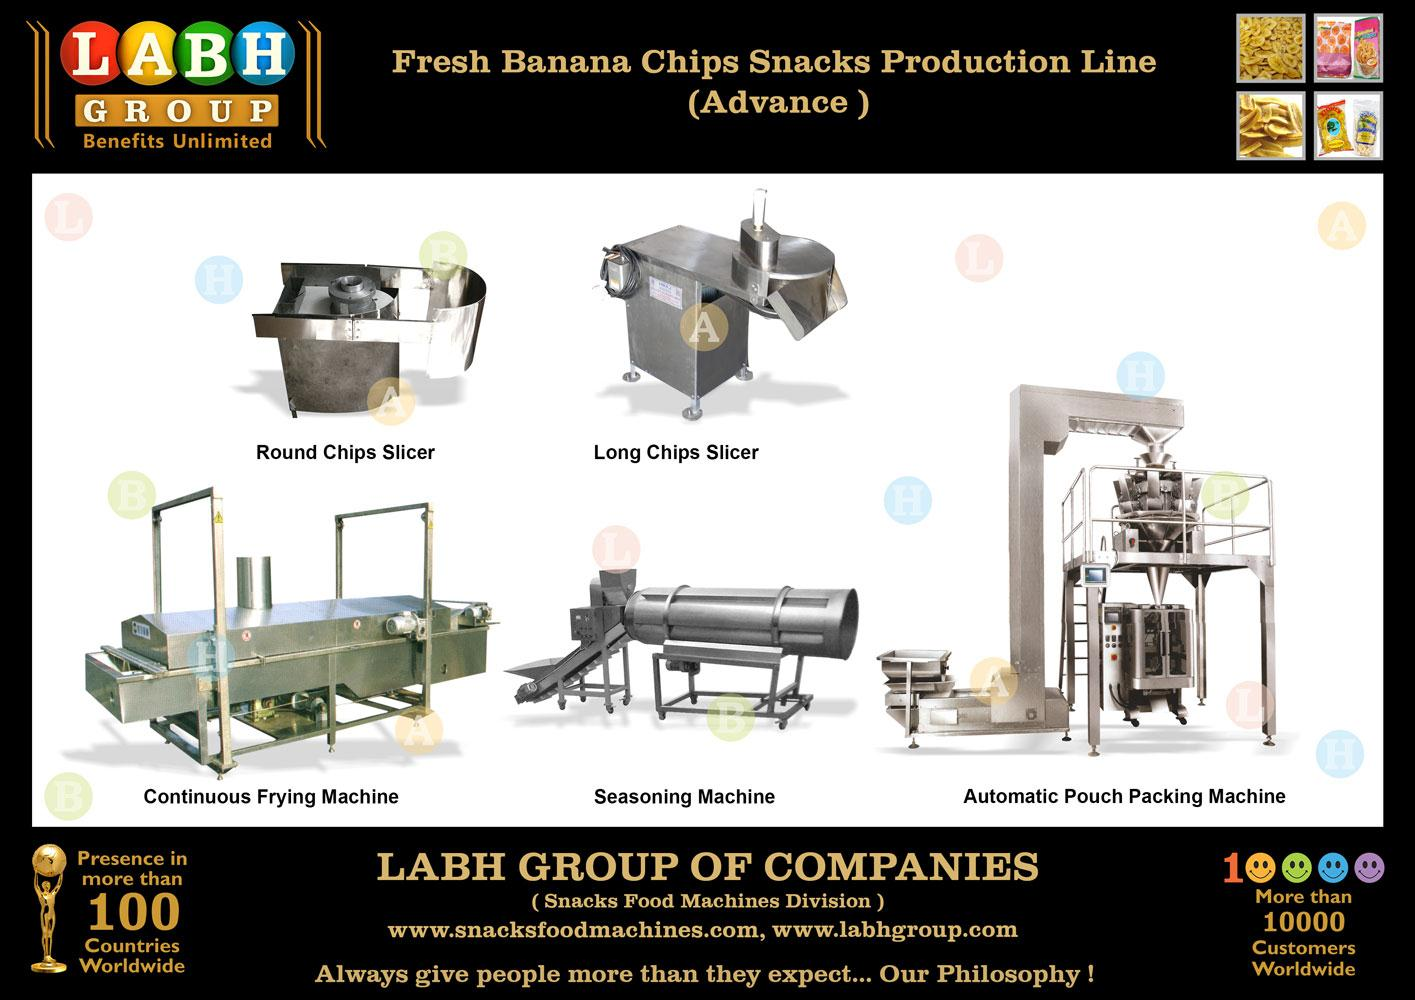 Cheap Price Economy Banana Chips Production Project b803abb